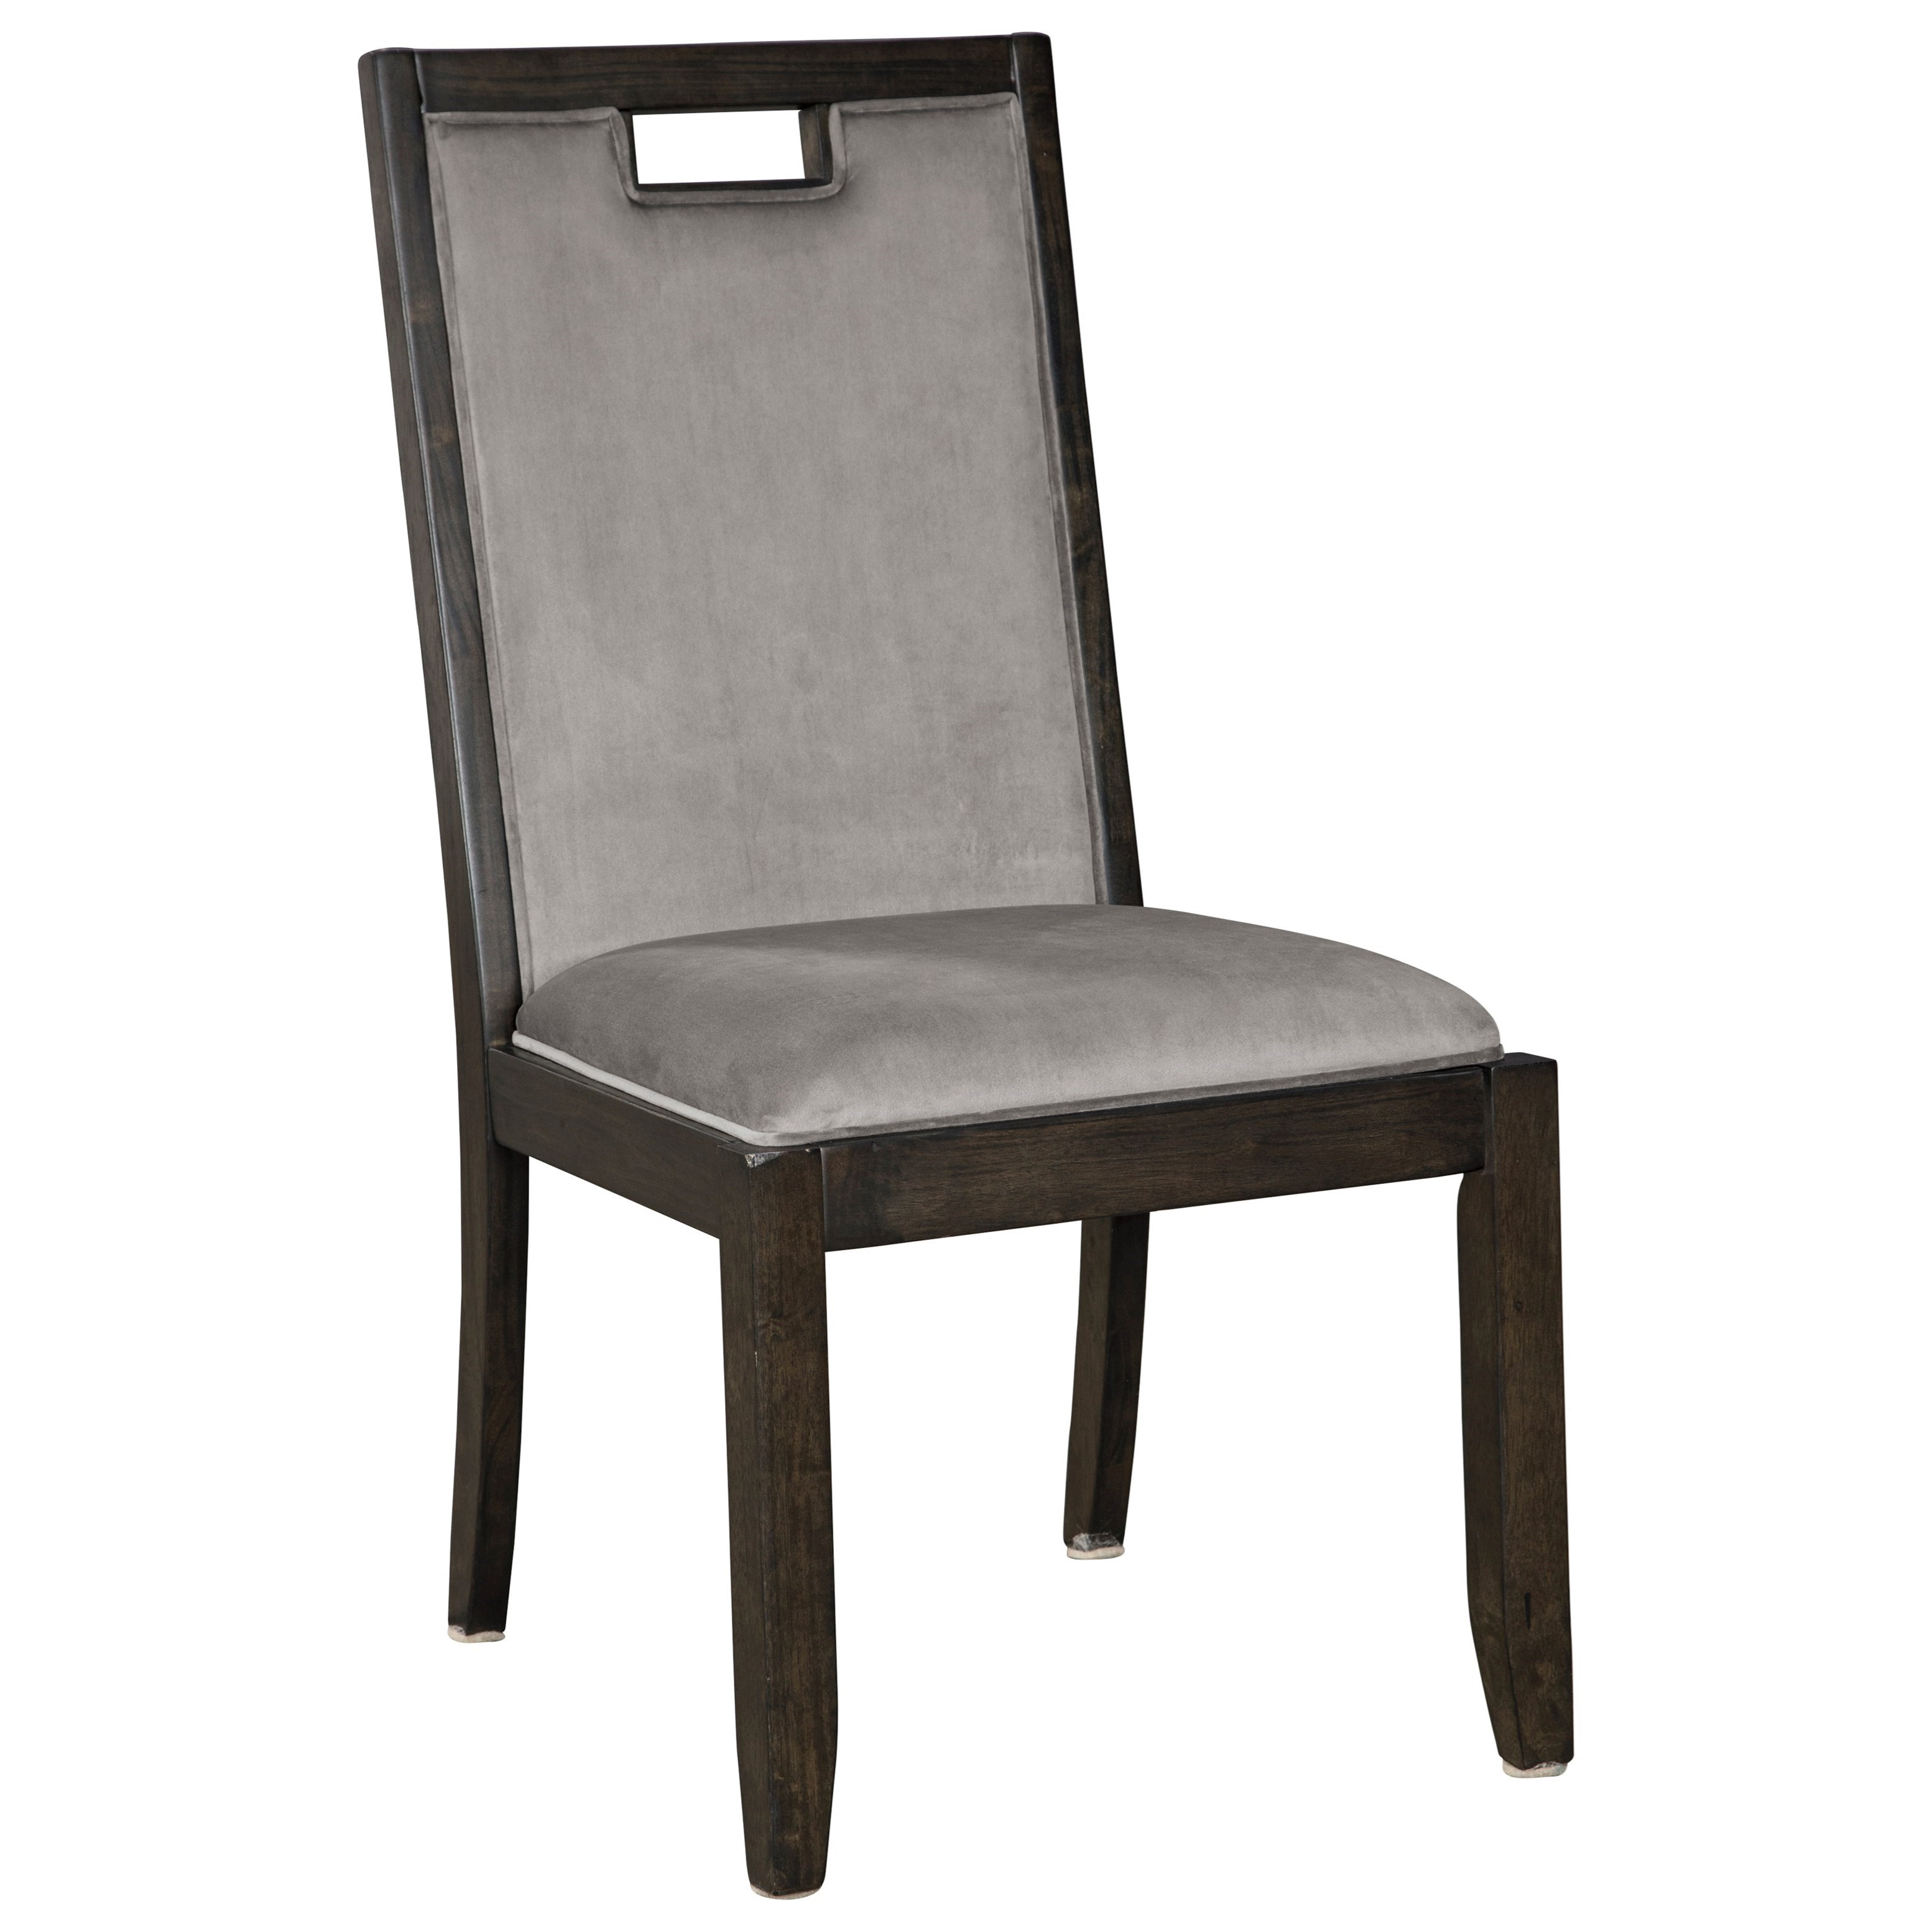 Hyndell Dining Upholstered Side Chair by Signature Design by Ashley at Furniture Fair - North Carolina